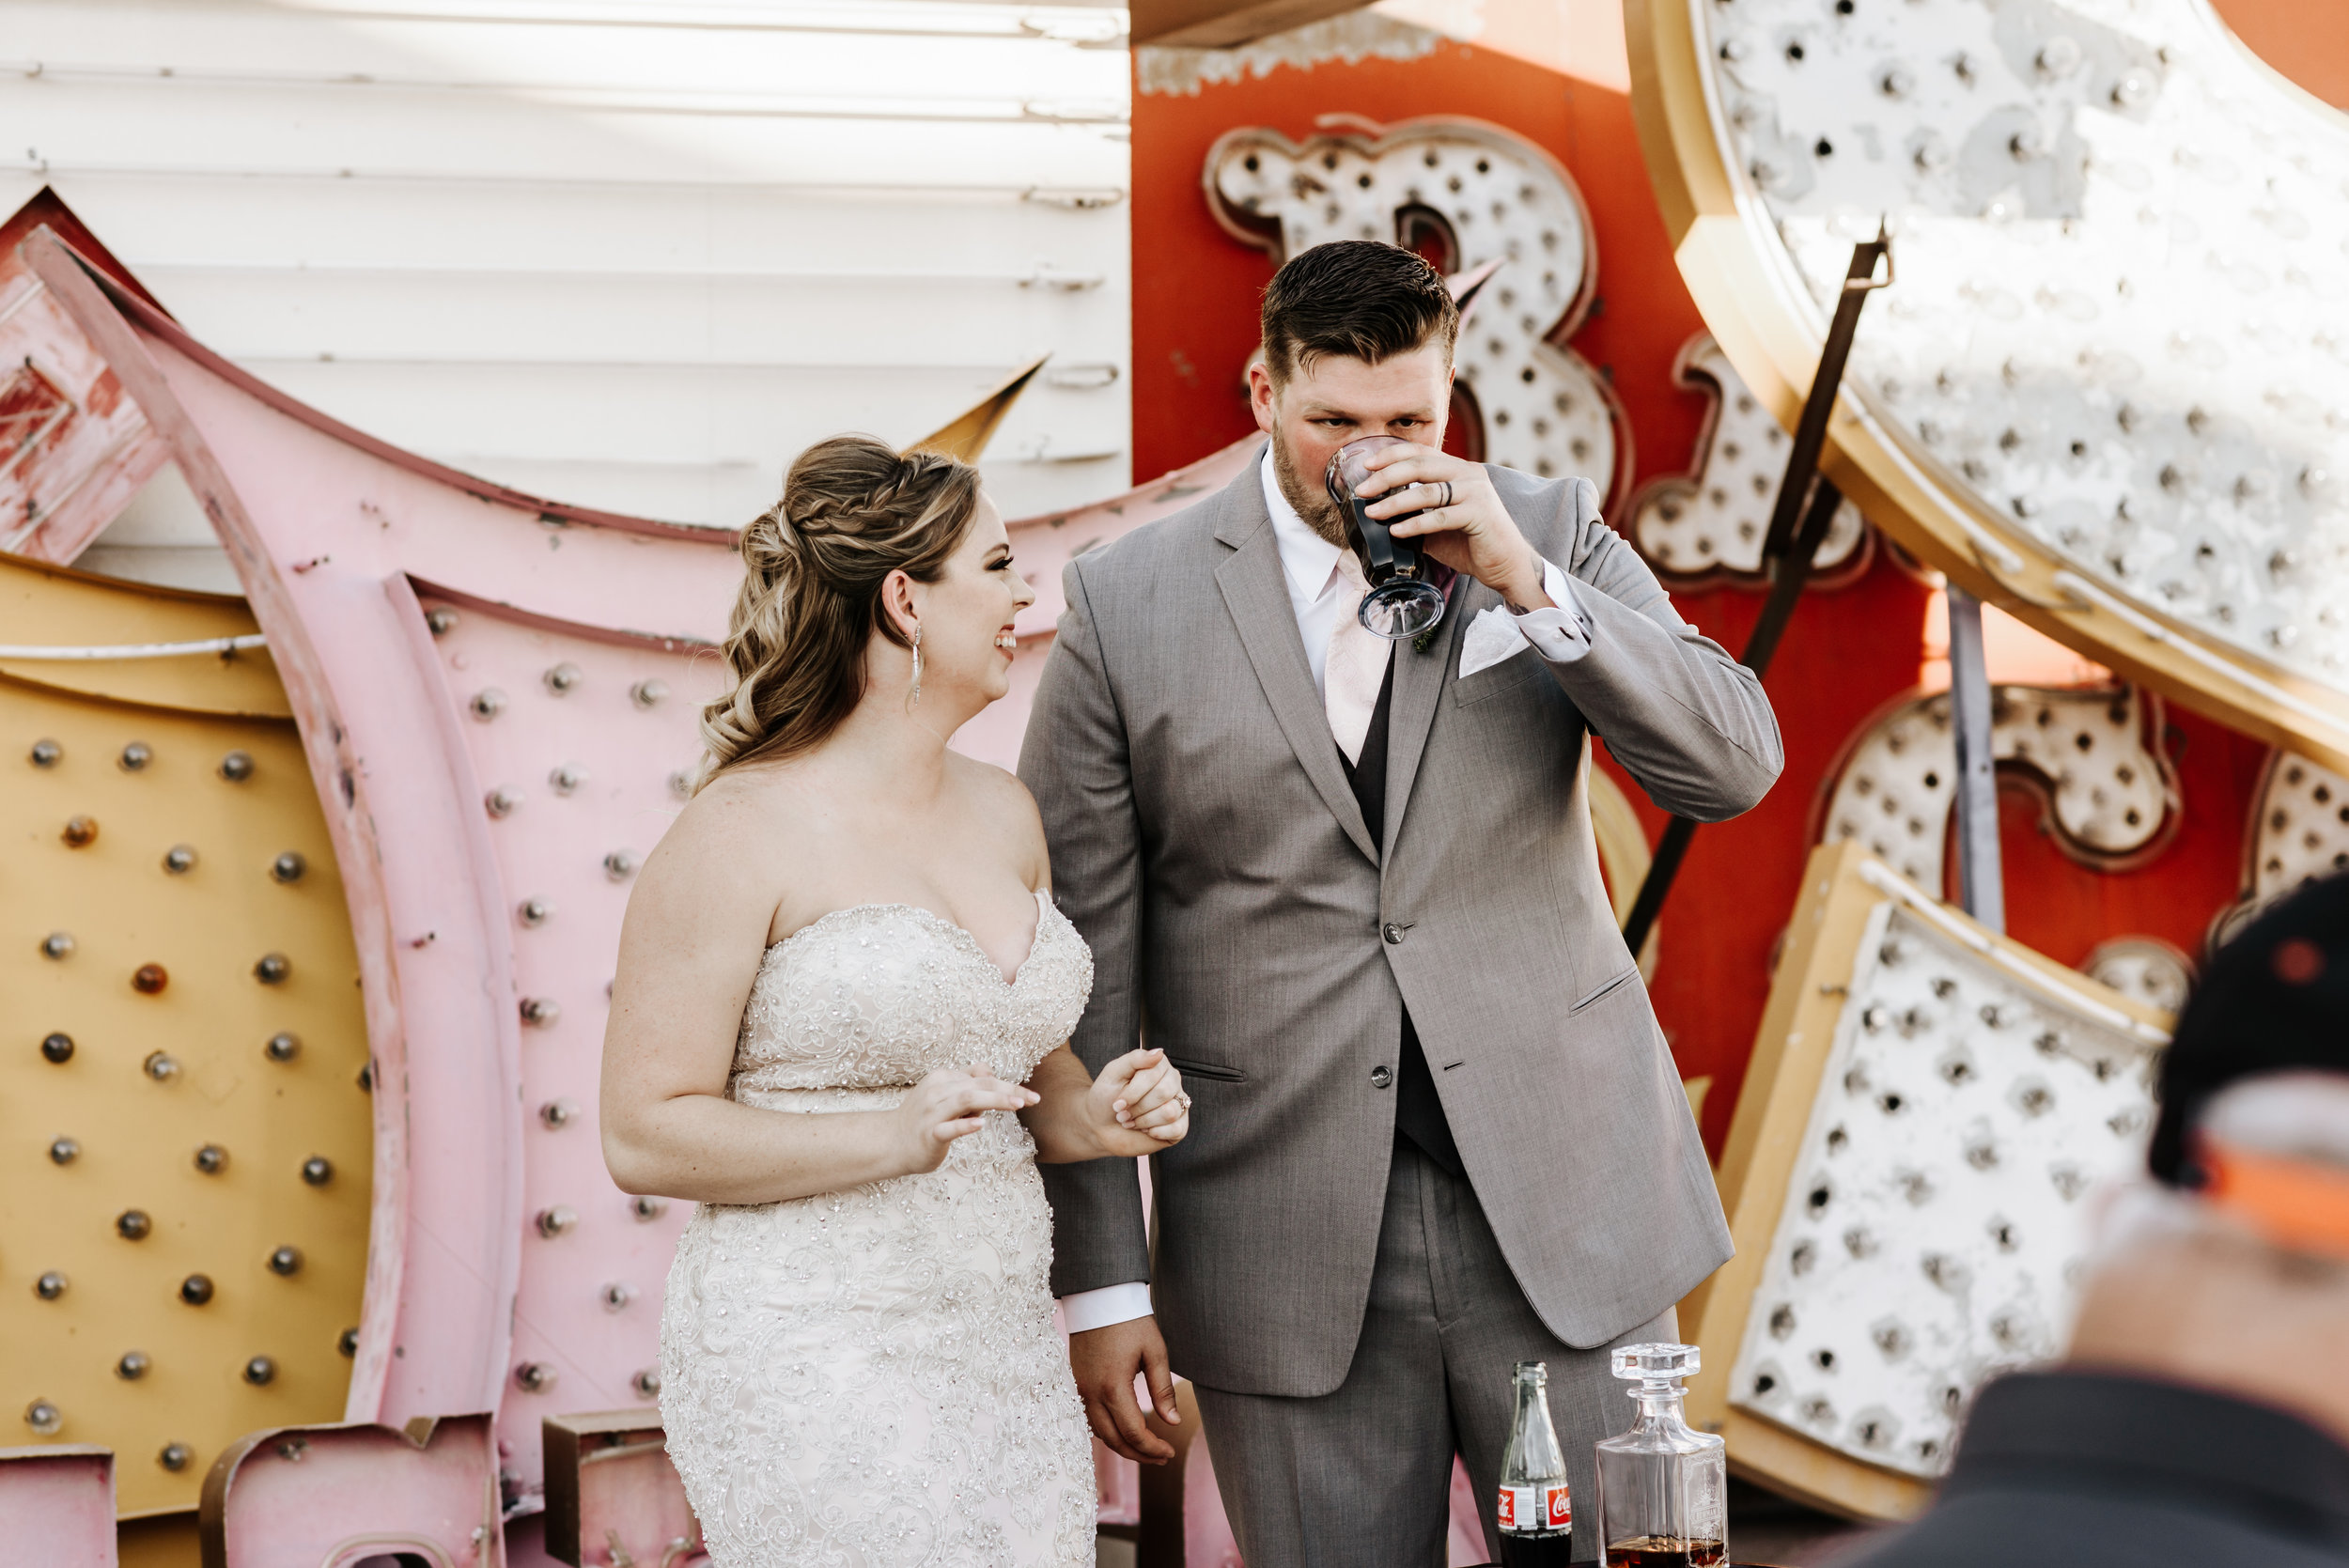 Neon-Museum-Wedding-Las-Vegas-Nevada-Golden-Nugget-Photography-by-V-Ally-and-Dan-6660.jpg